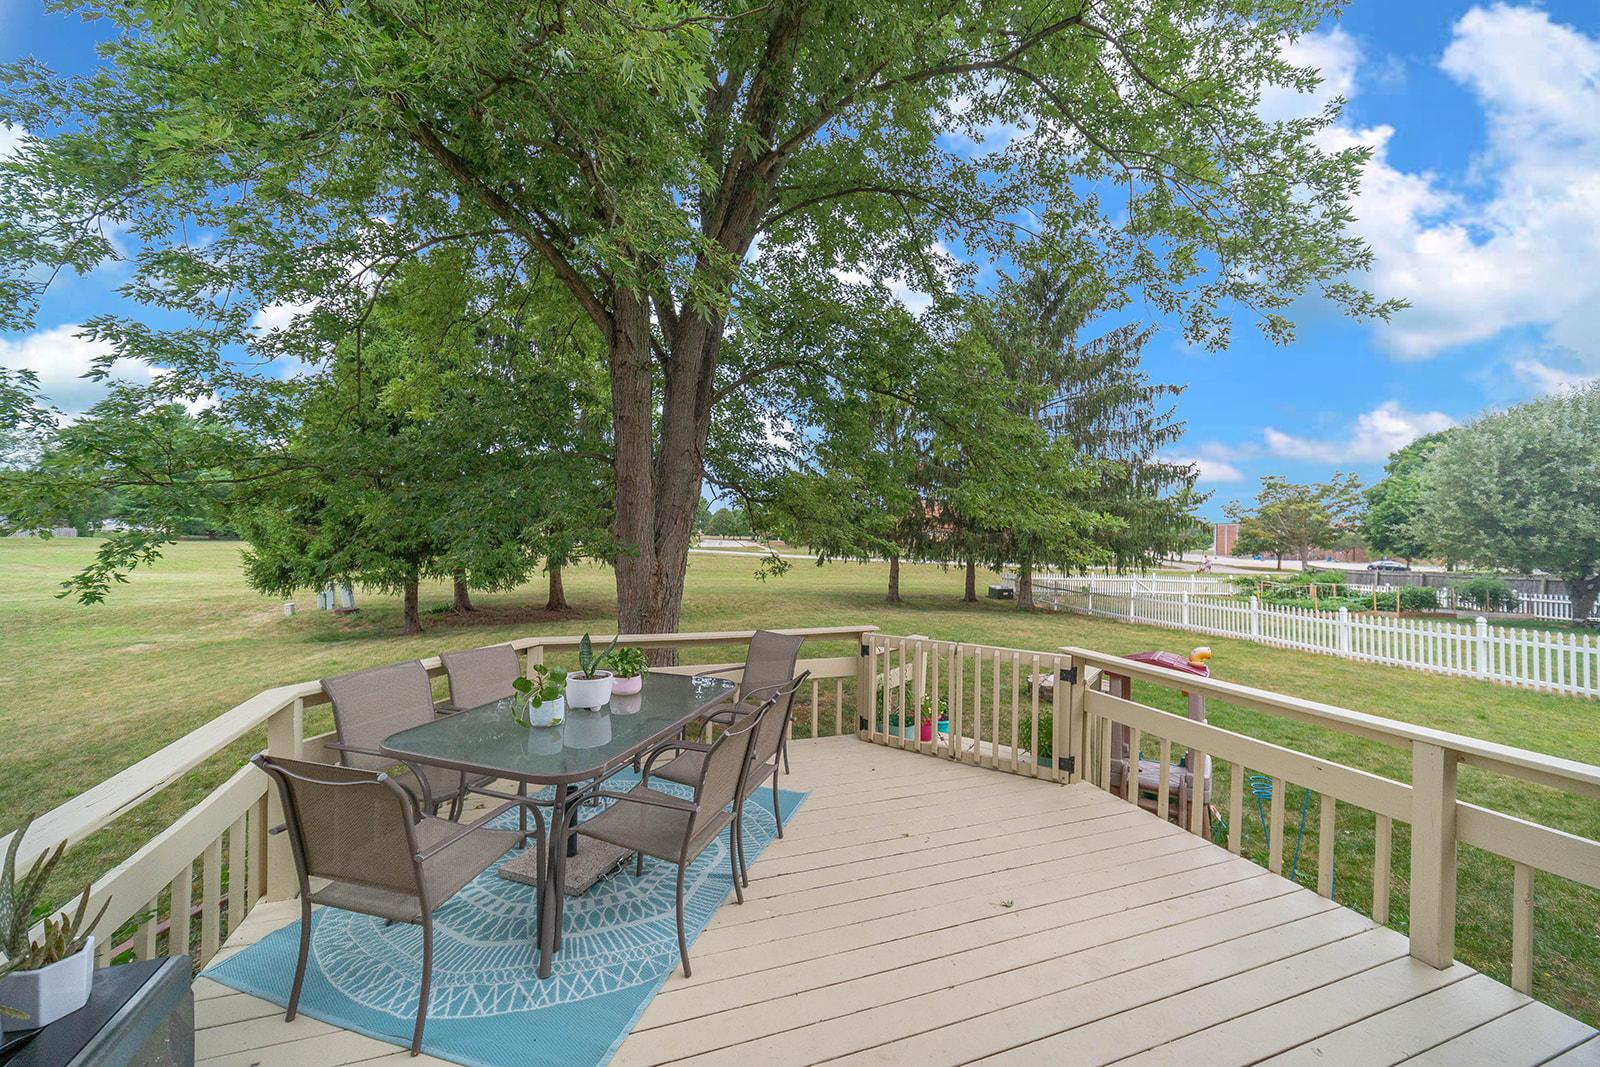 7987 Saddle Run, Powell, Ohio 43065, 3 Bedrooms Bedrooms, ,3 BathroomsBathrooms,Residential,For Sale,Saddle Run,220025602